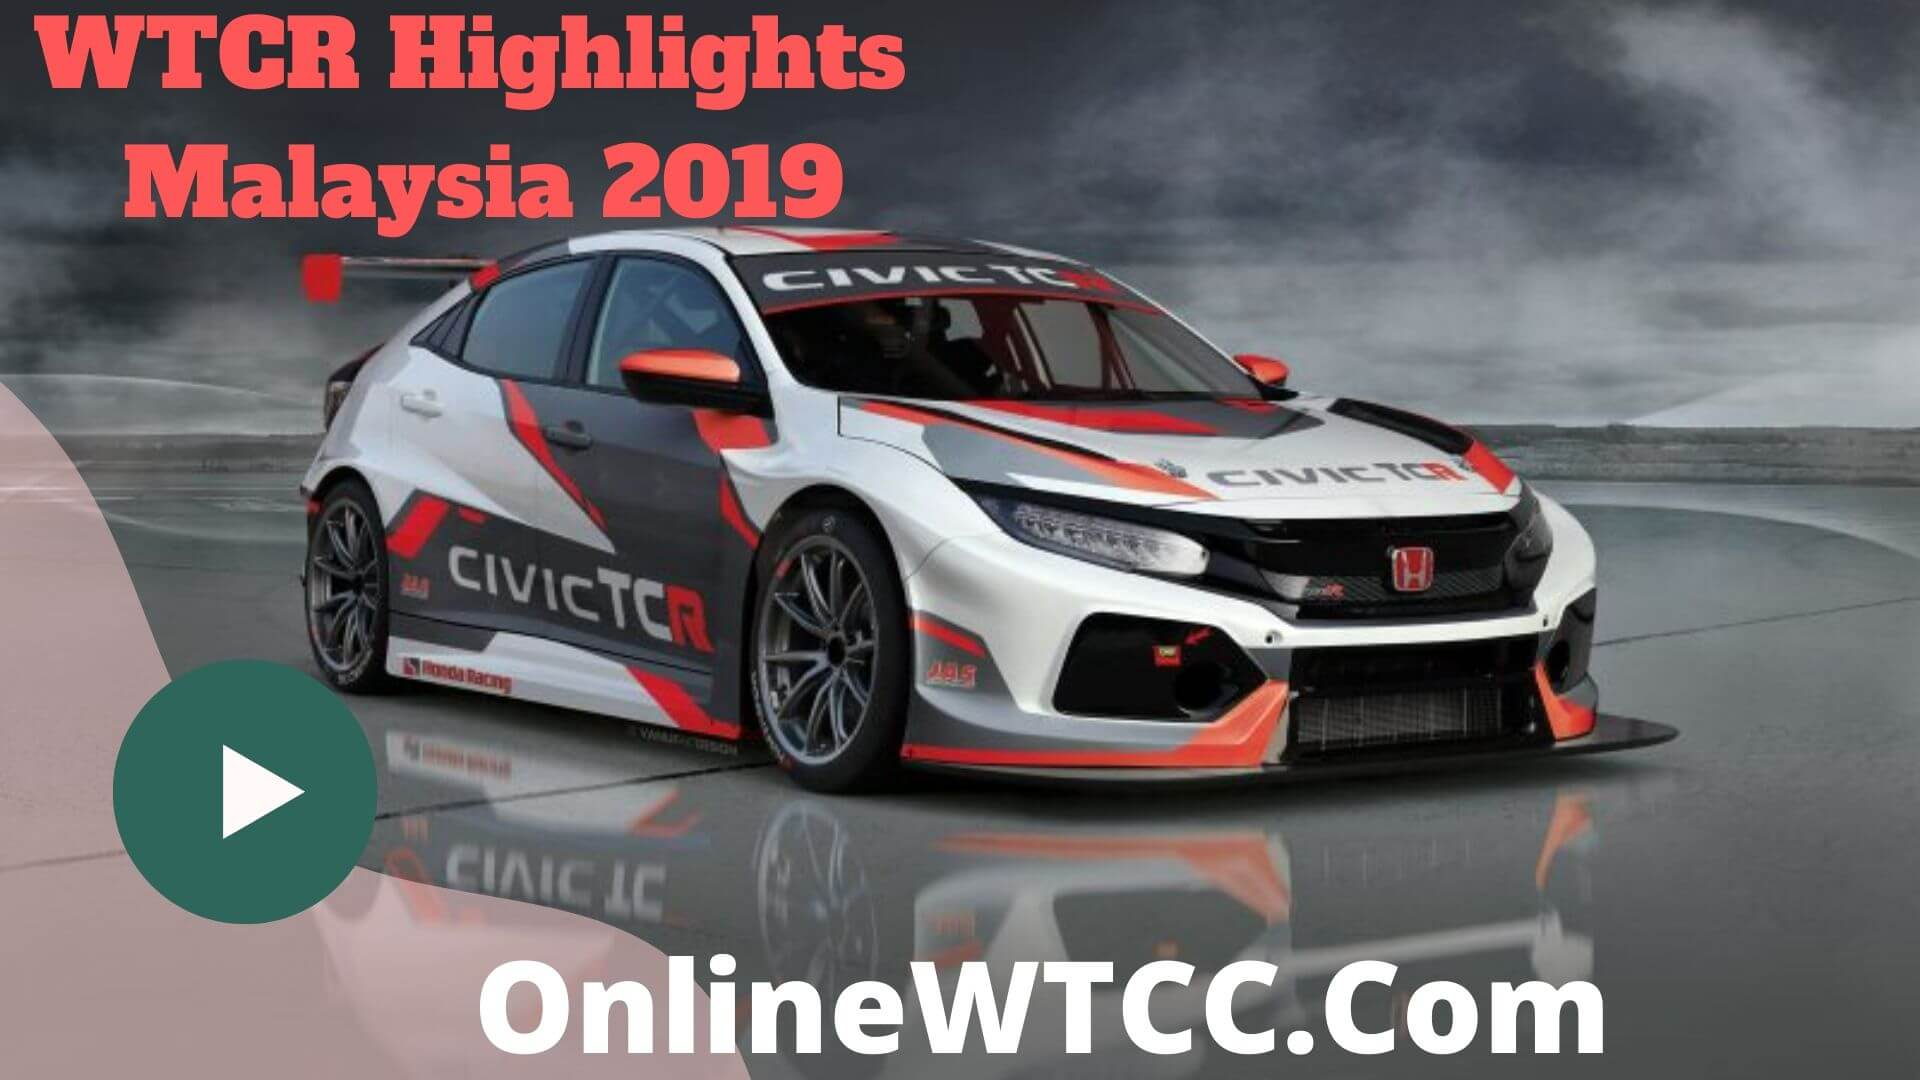 Malaysia WTCR Highlights 2019